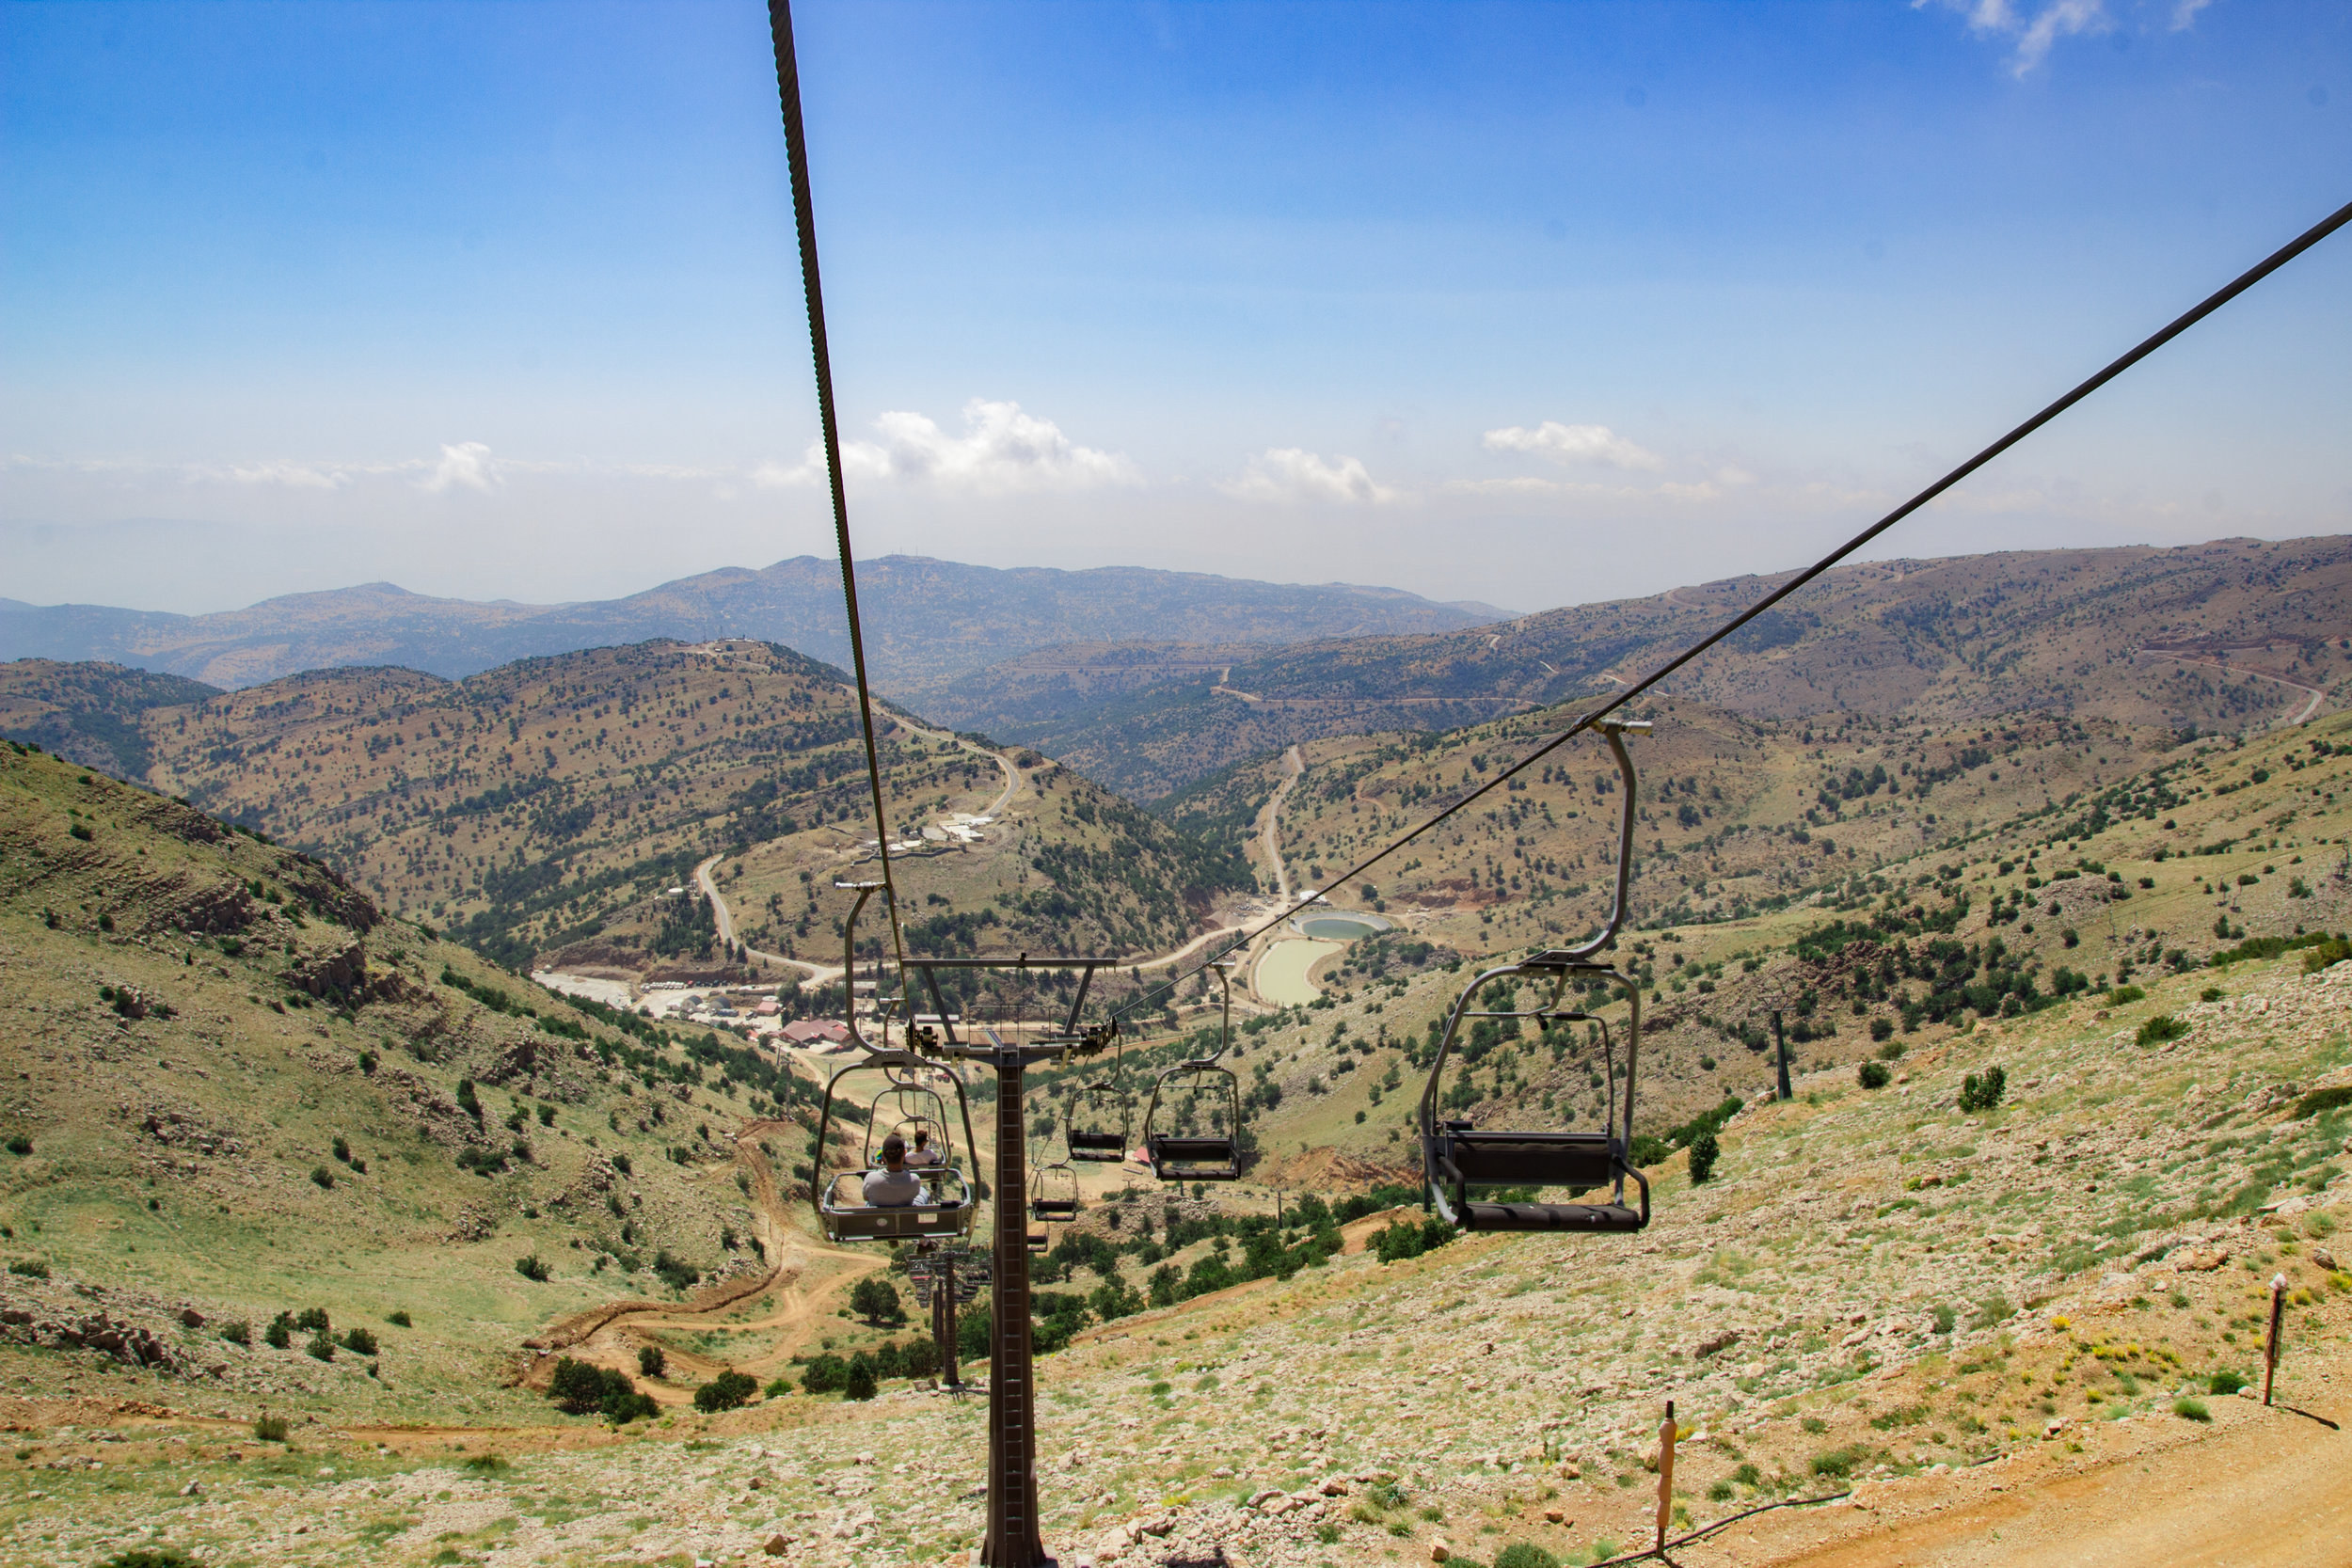 This was super special - Roei brought me to one of the places he served in the military.  We took the chairlift up and down the mountain - the highest point in Israel.